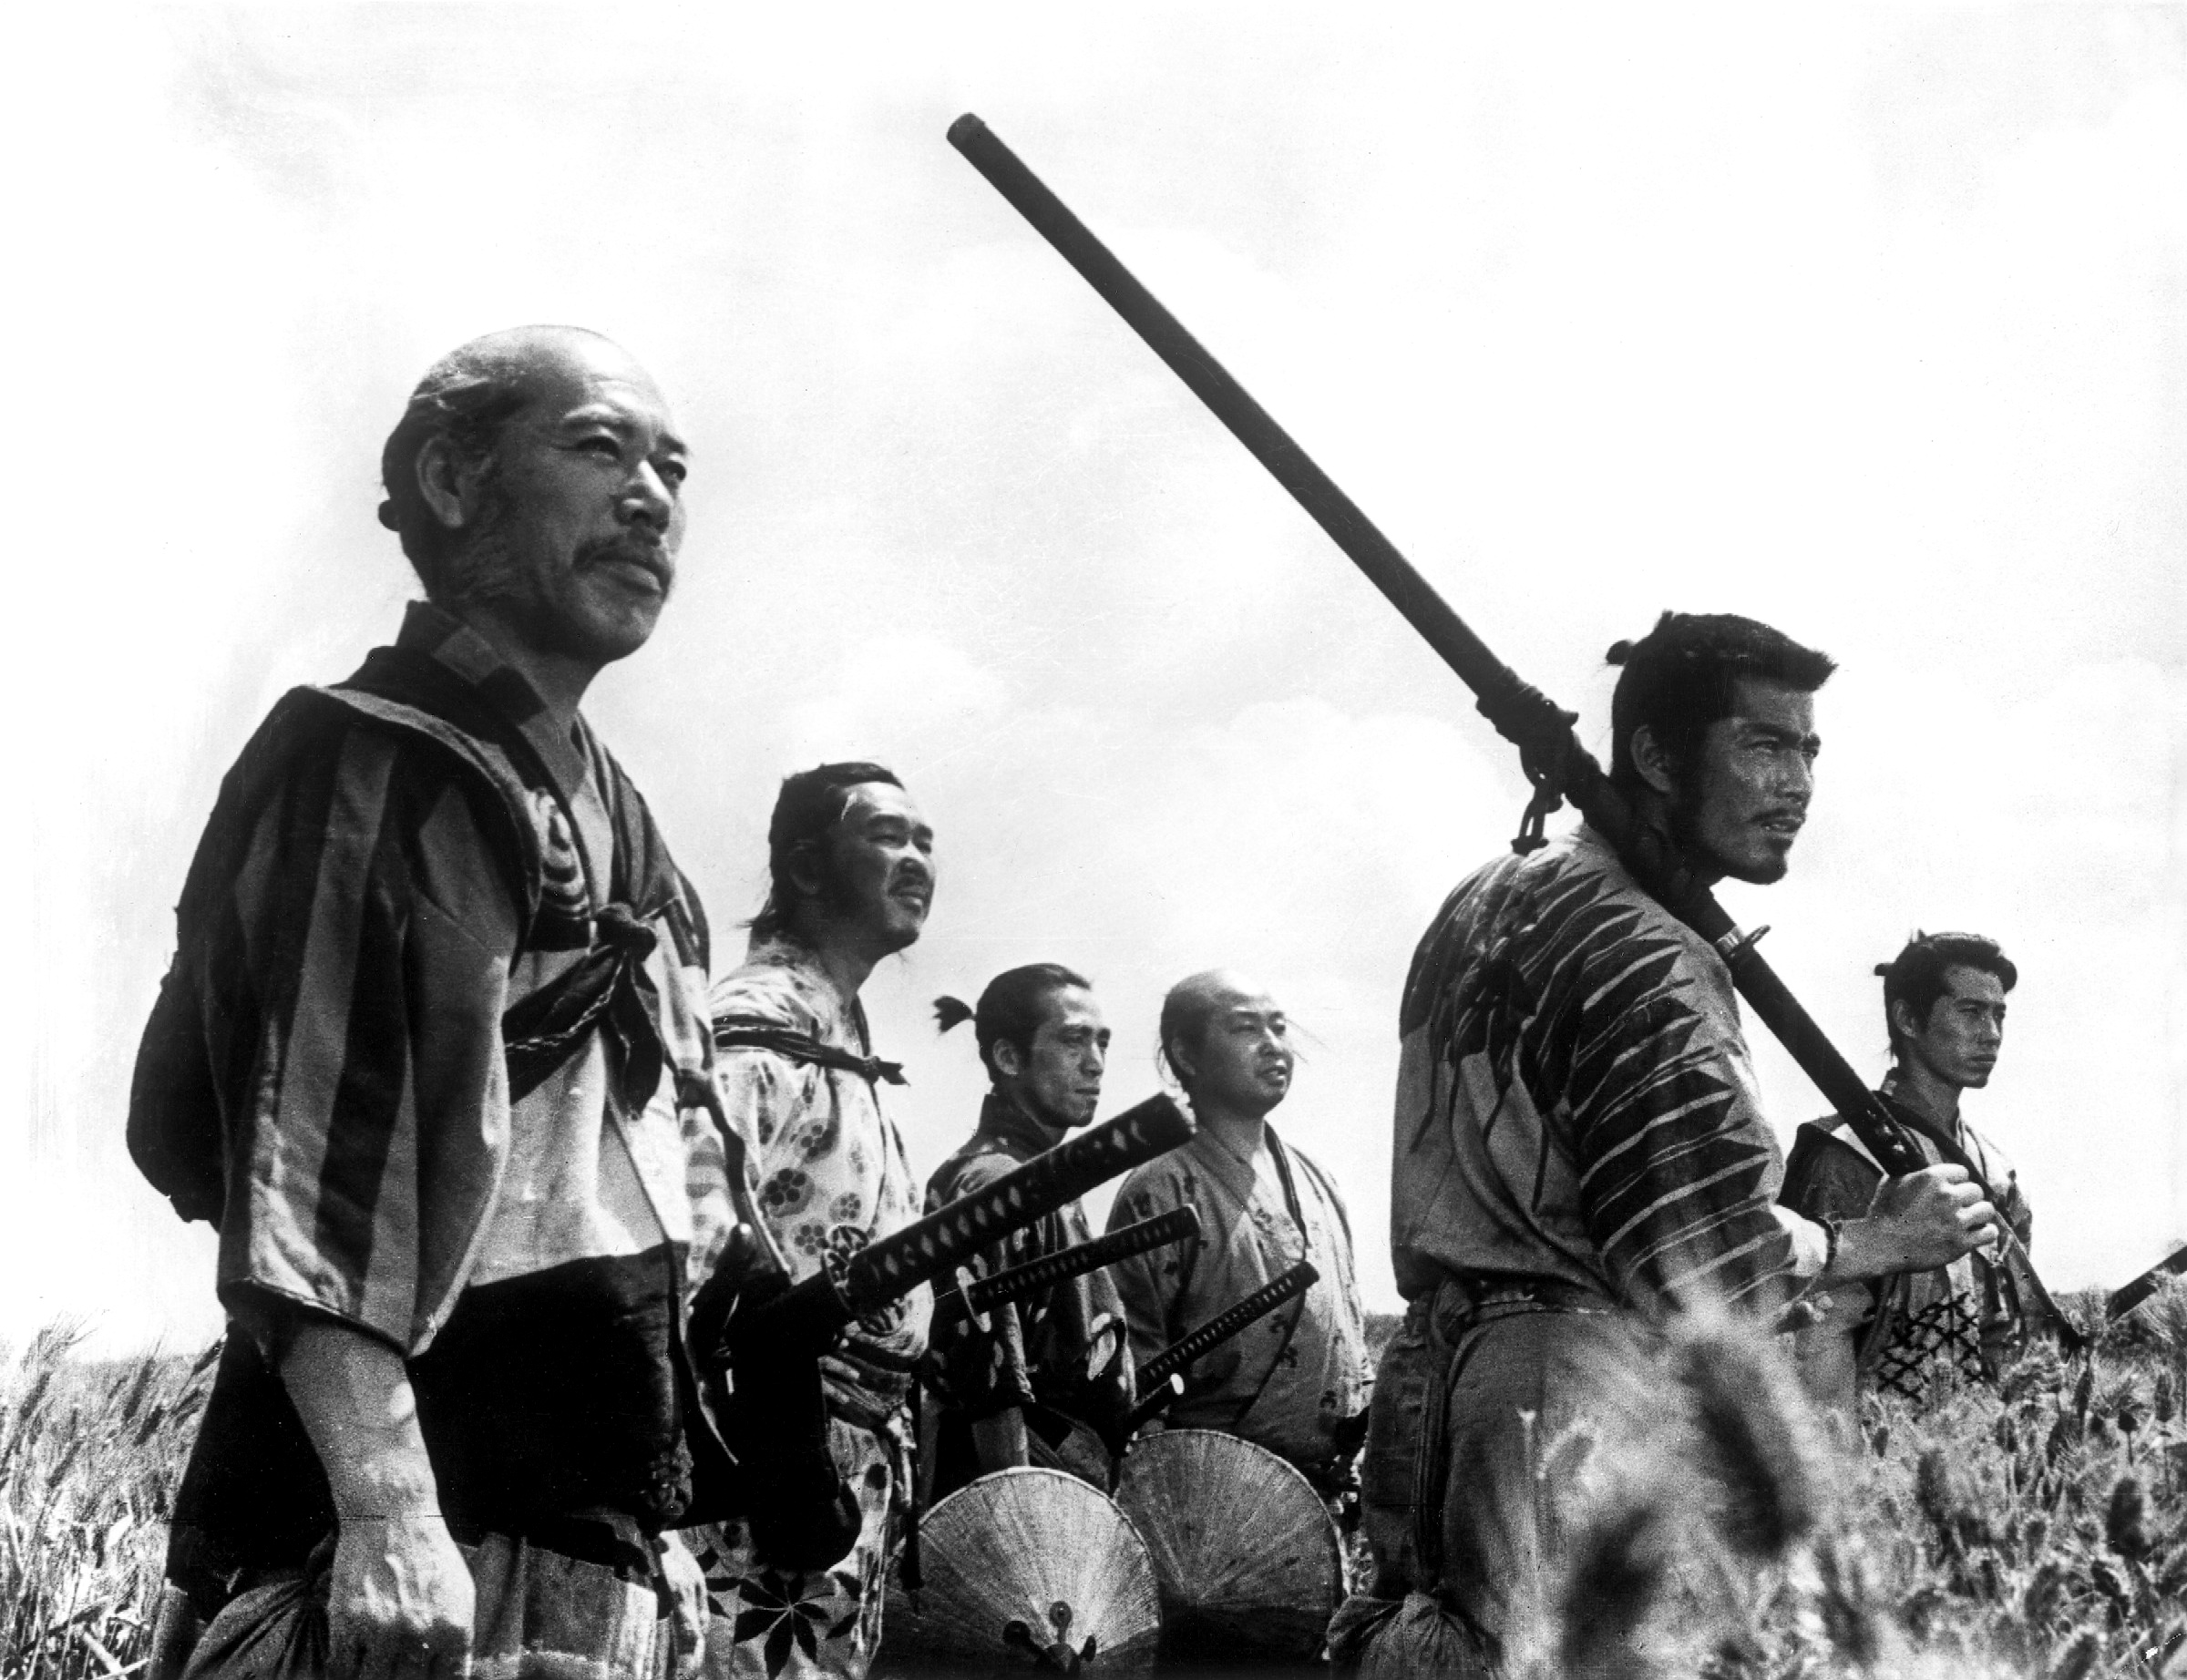 a comparison of the seven samurai by akira kurosawa and the megnificent seven by john struges Comparison with a comparison of the seven samurai by akira kurosawa and the megnificent seven by john struges seven samurai would match the cowboys with  for a better experience on mubi.